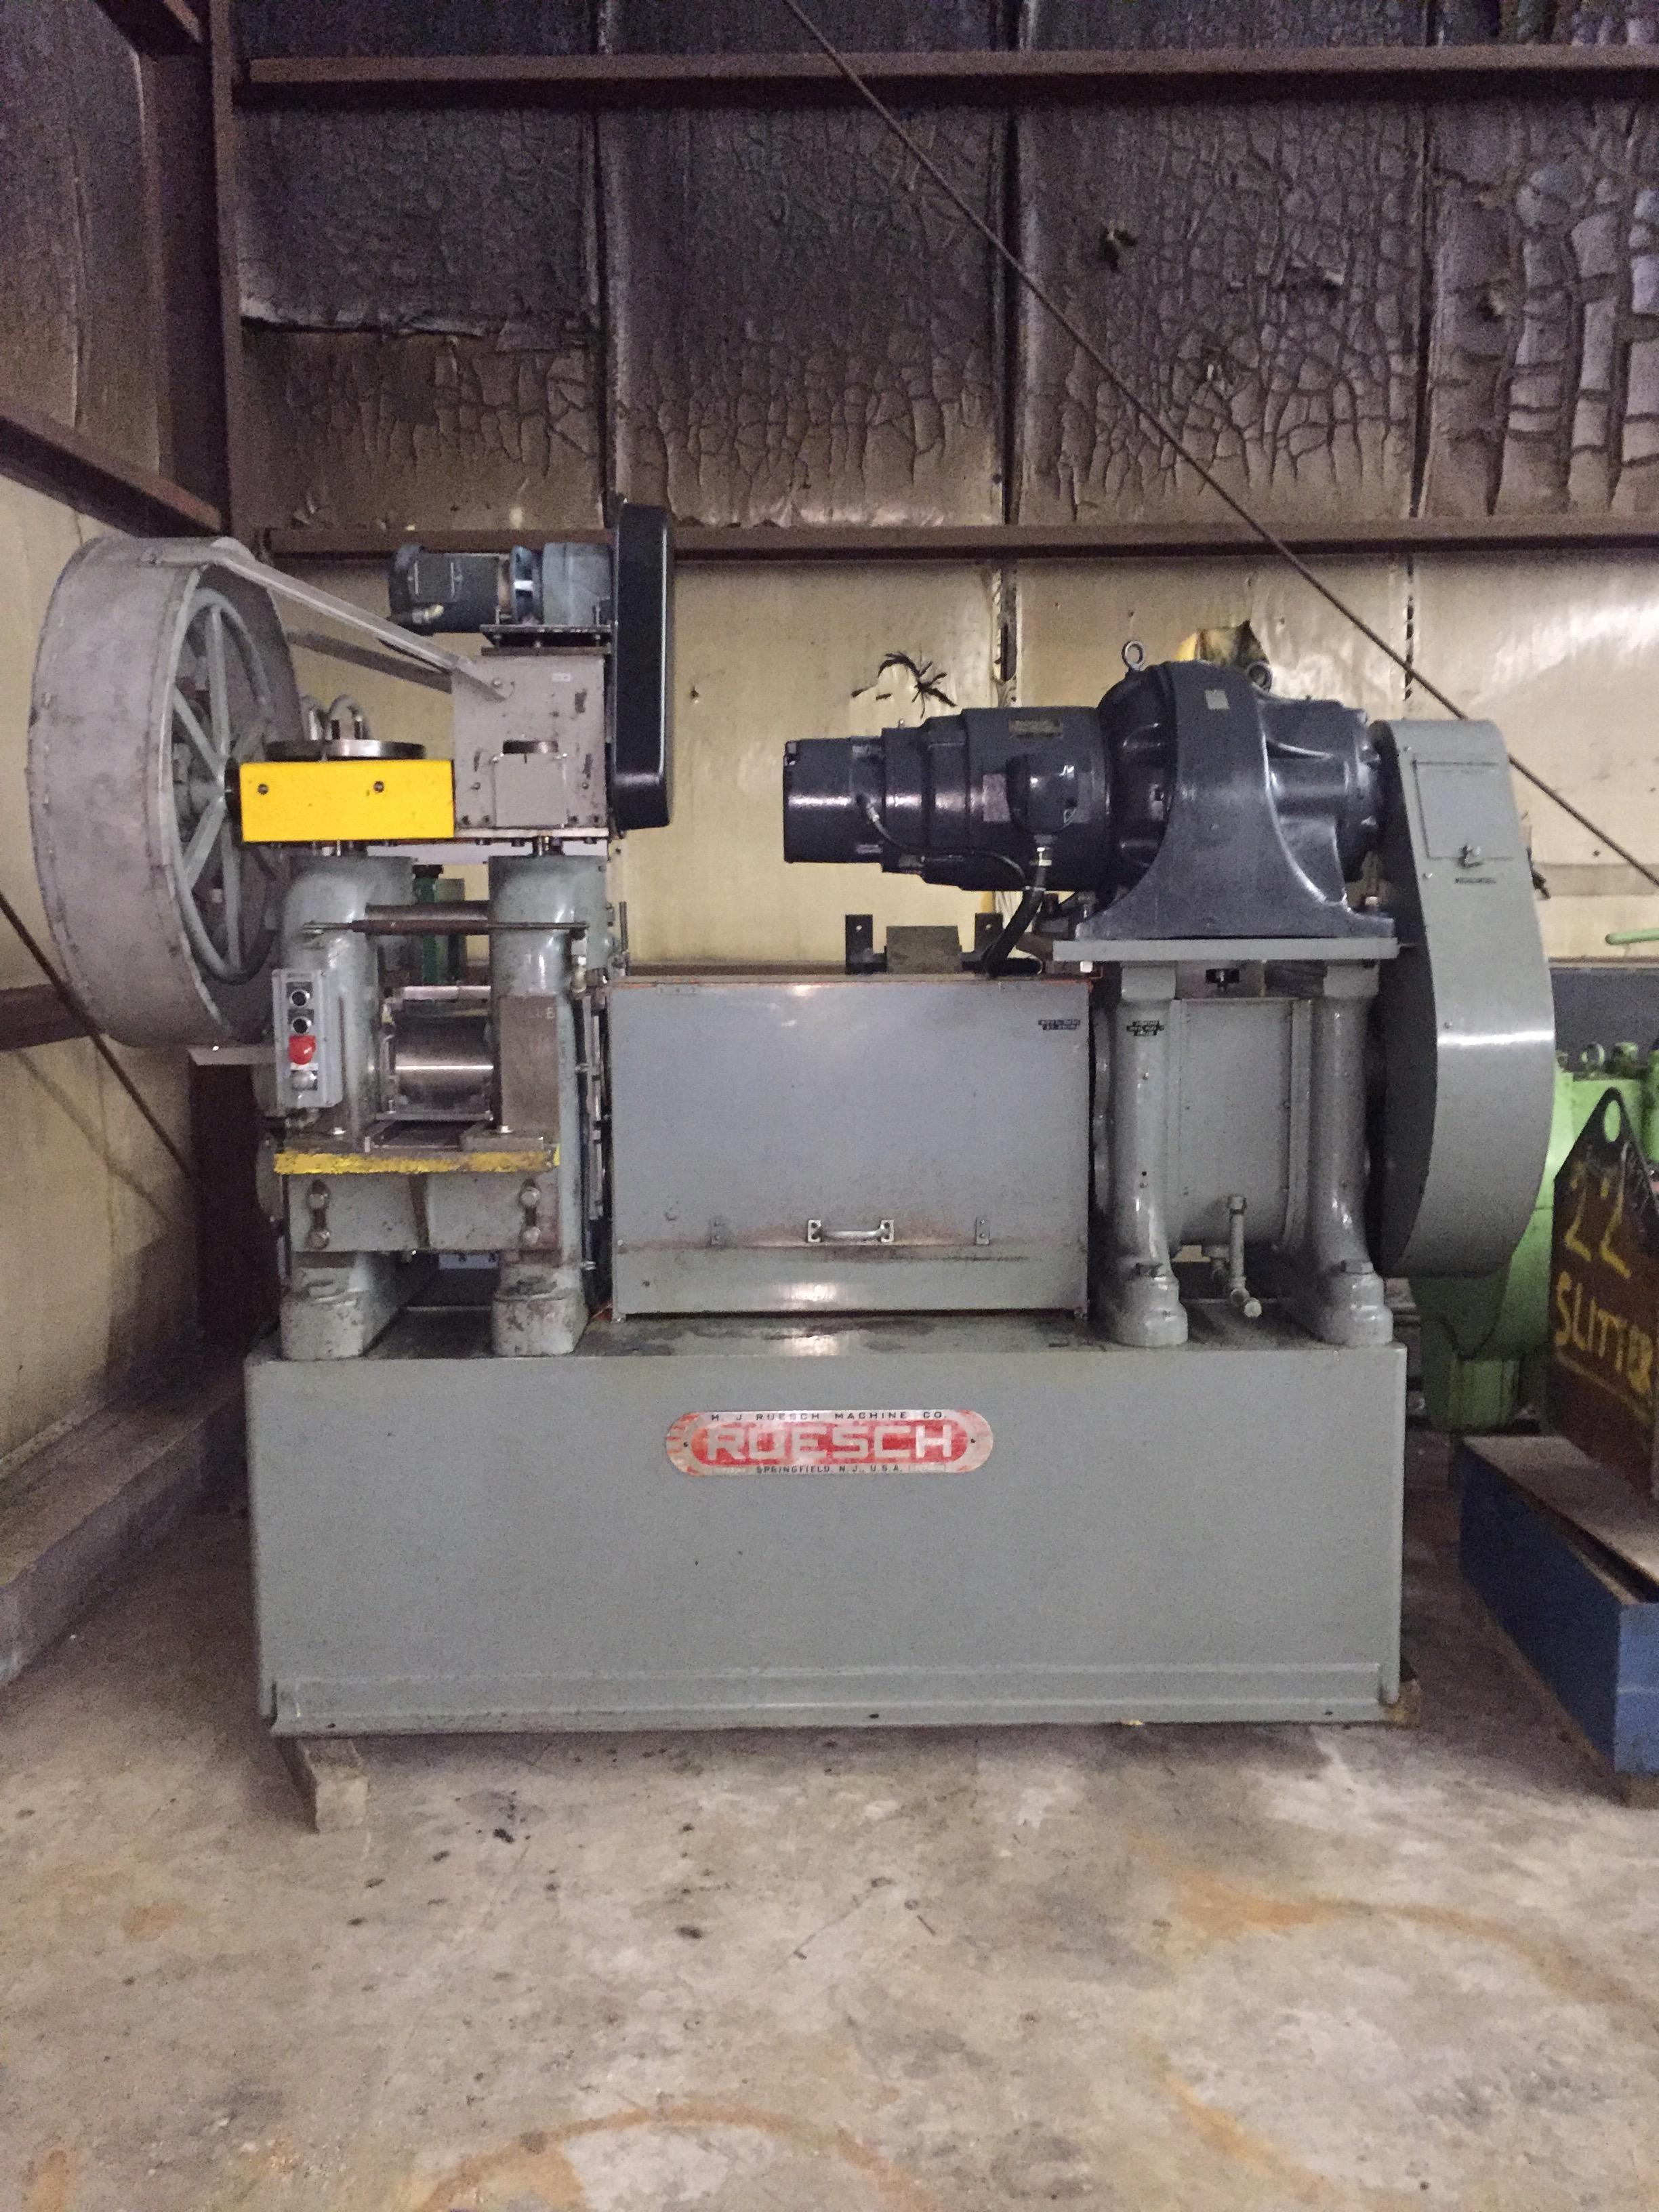 "RUESCH 8"" X 8"" 2HI ROLLING MILL WITH POWER ASSIST SCREWDOWNS"